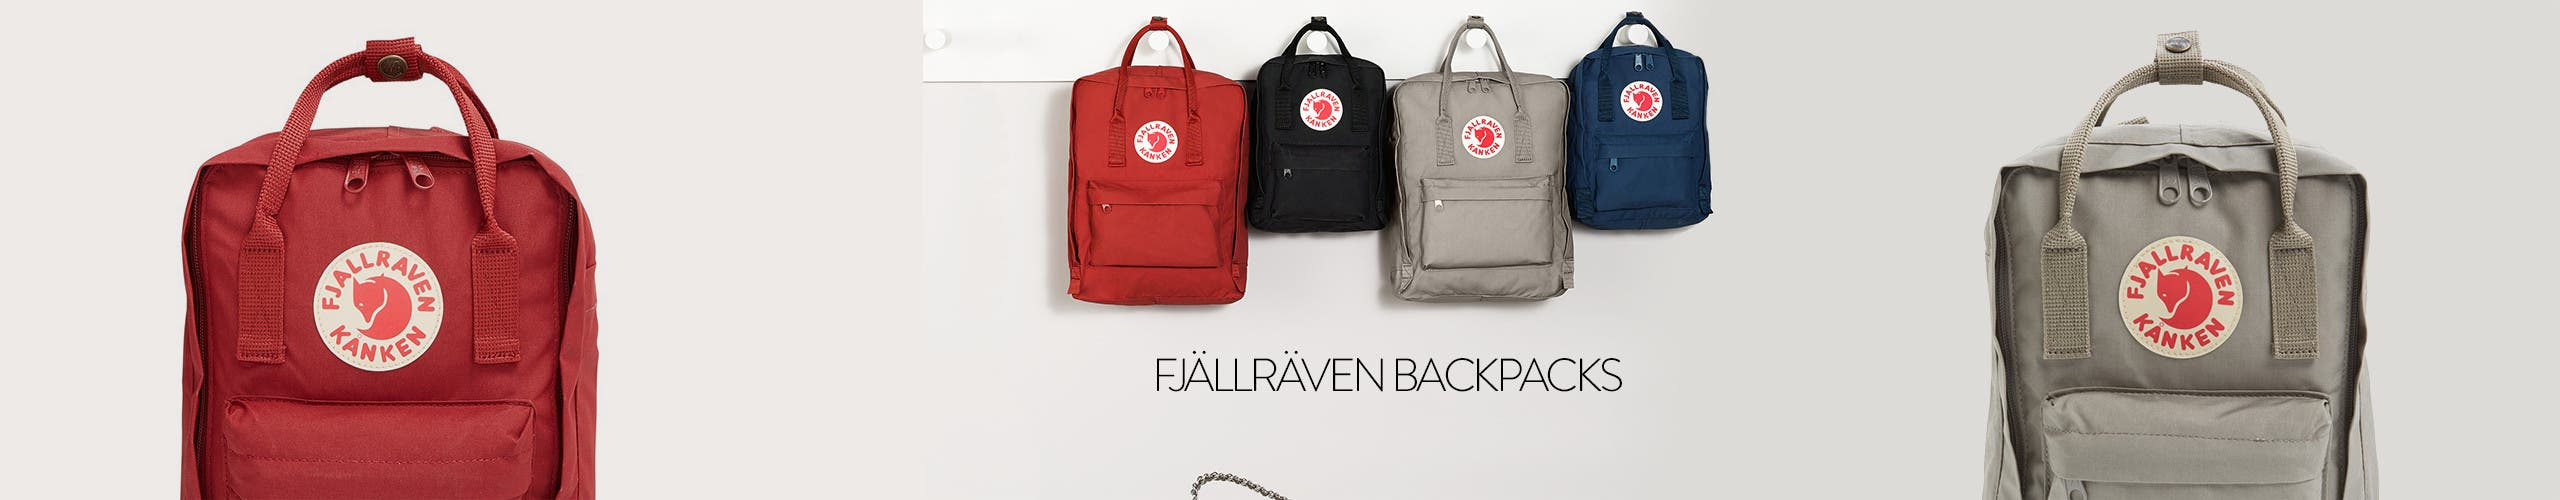 Fjällräven backpacks for back to school.